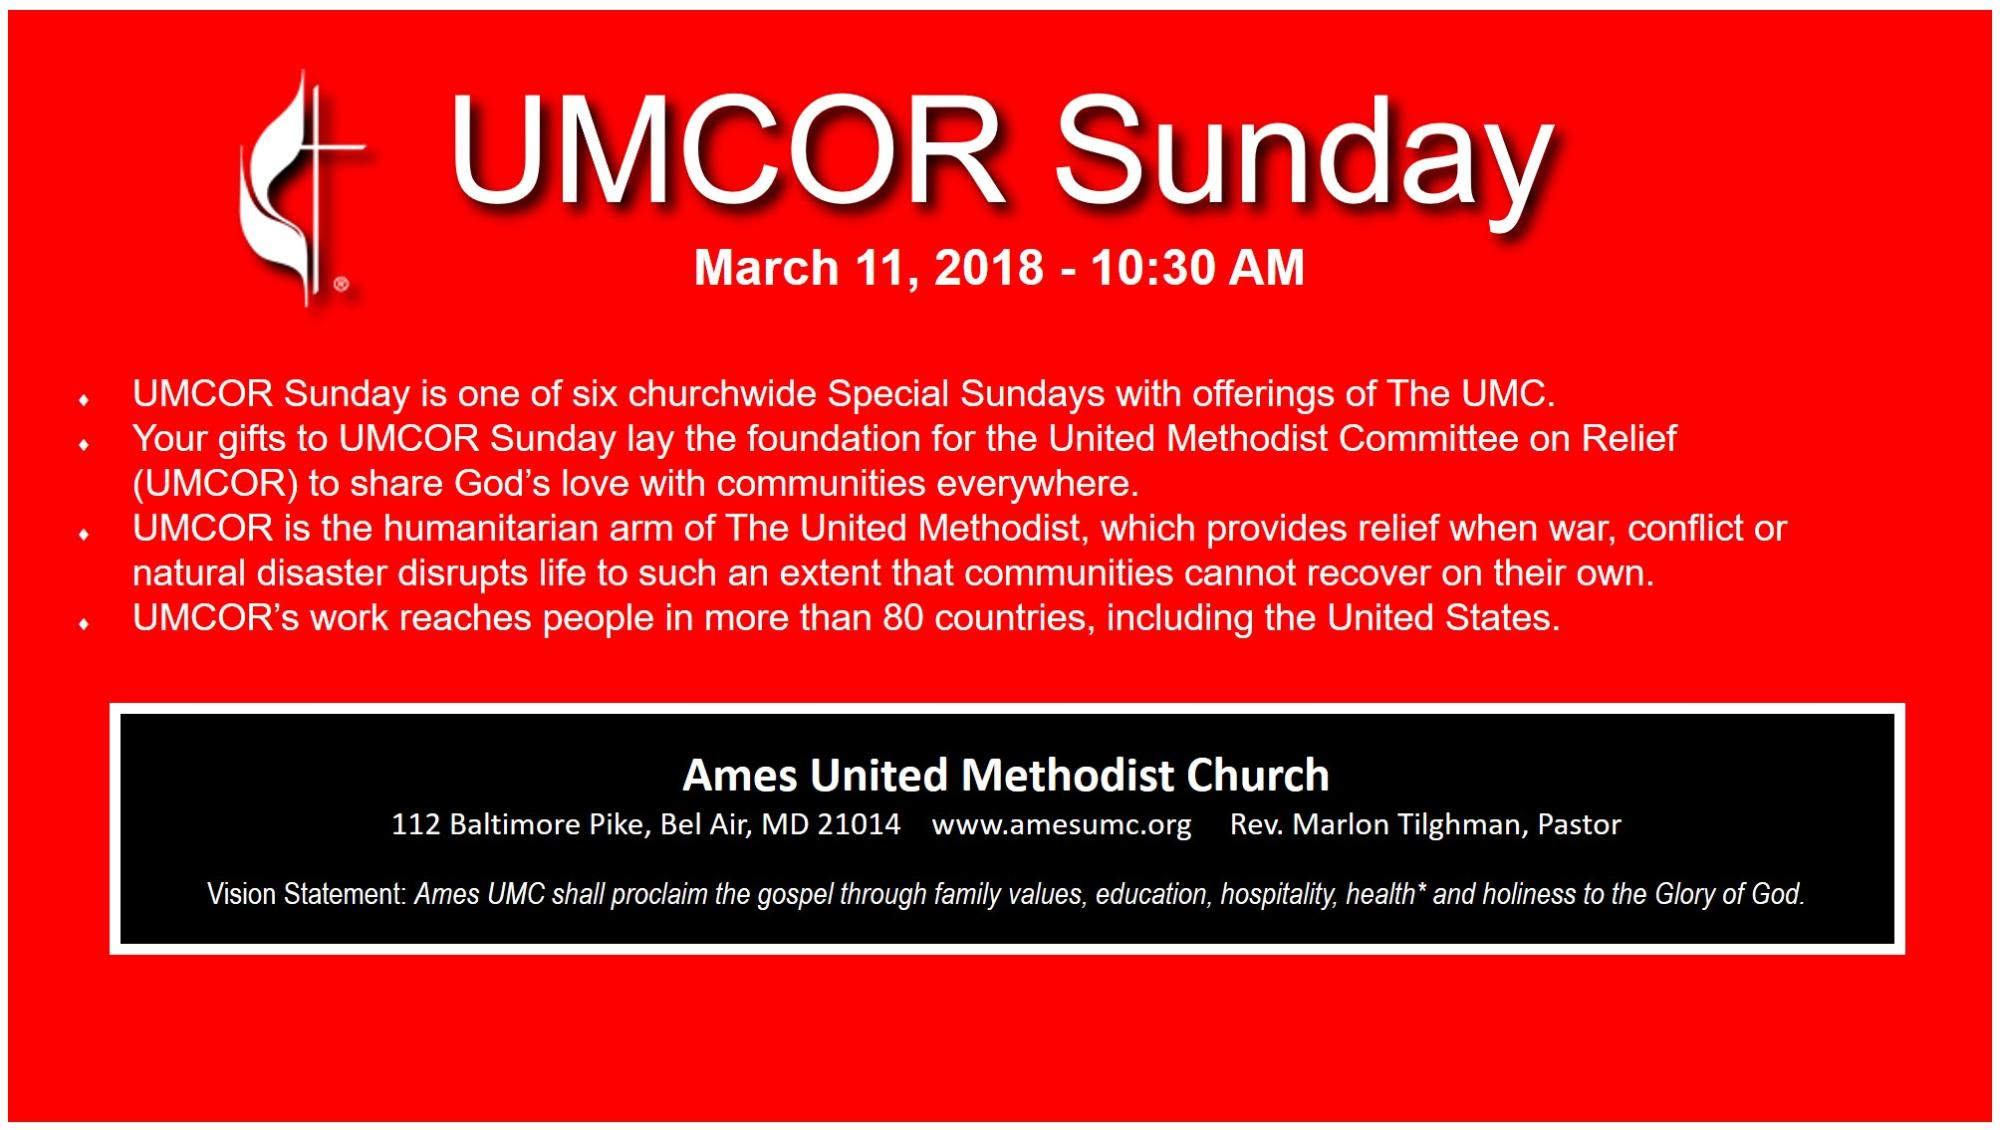 1b_-_2018_UMCOR_Sunday.jpg